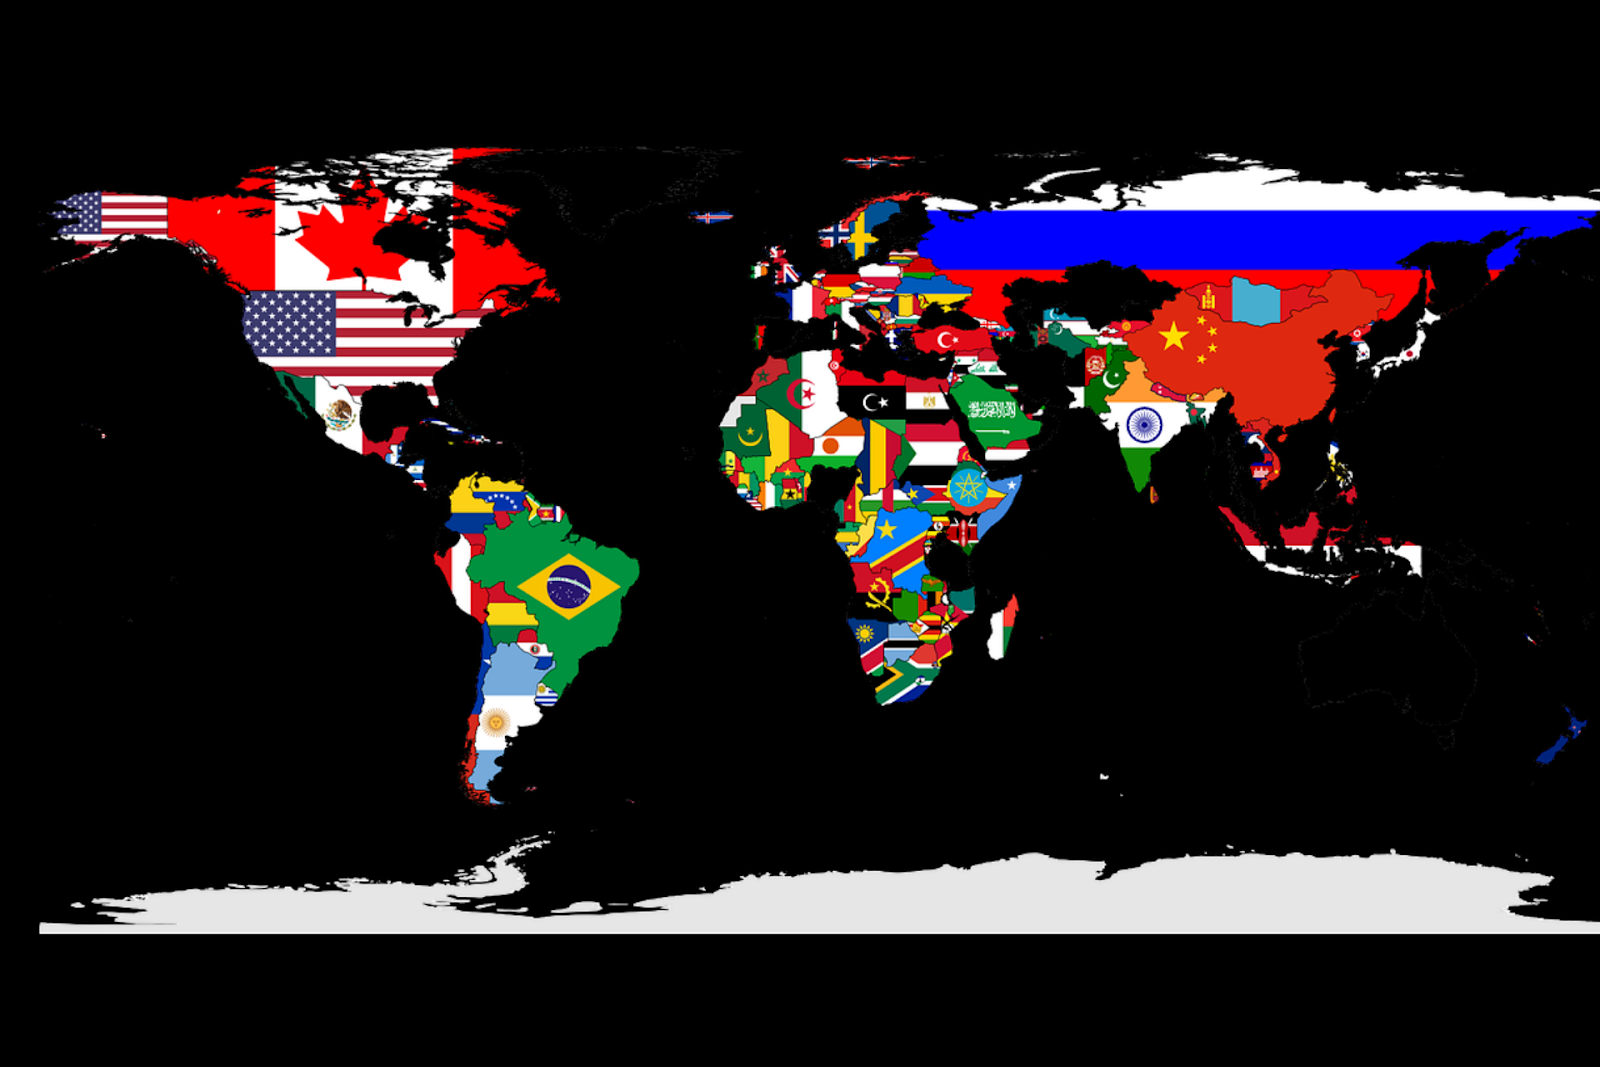 A map of the world with affiliated flag for each country.